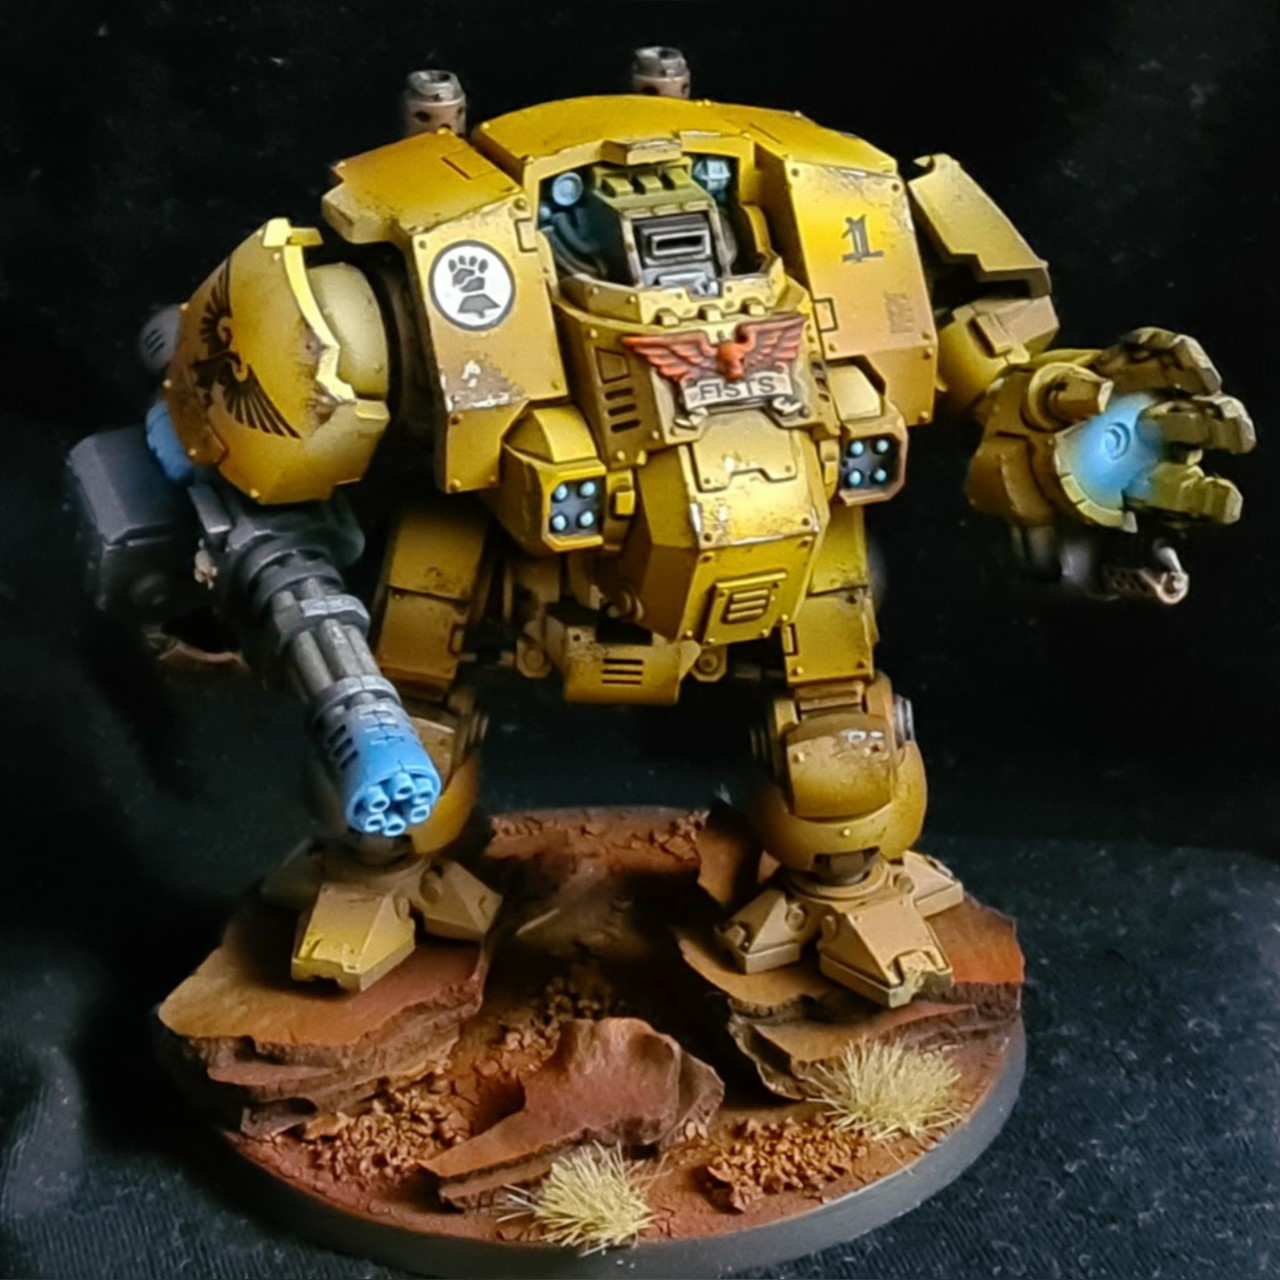 Imperial fist redemptor dreadnought